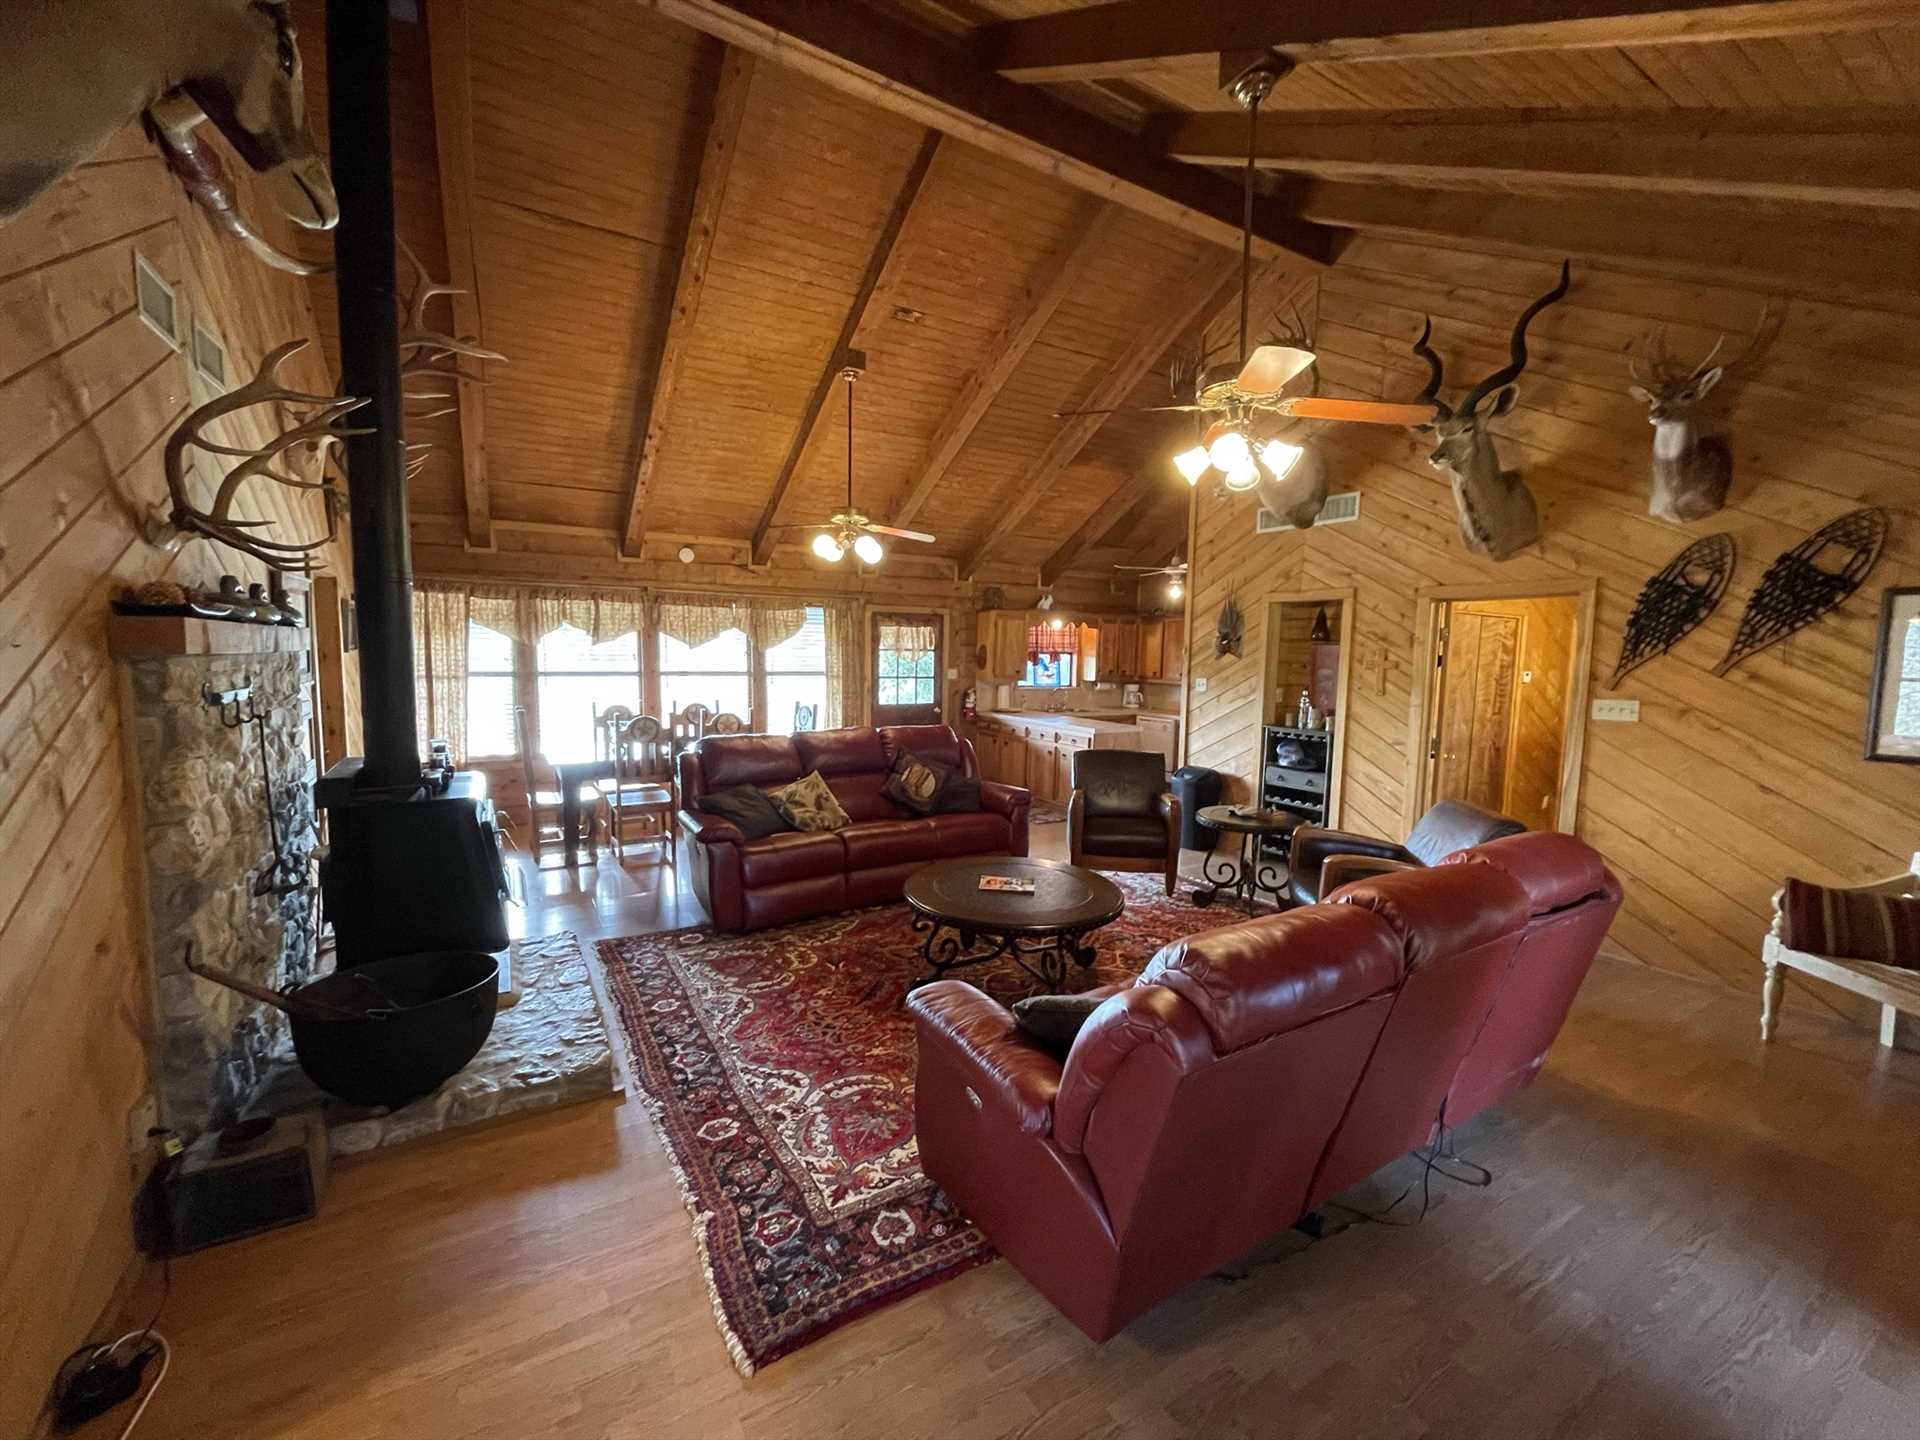 A vintage fireplace and rustic western decor add warmth to the Lodge, in every sense of the word.